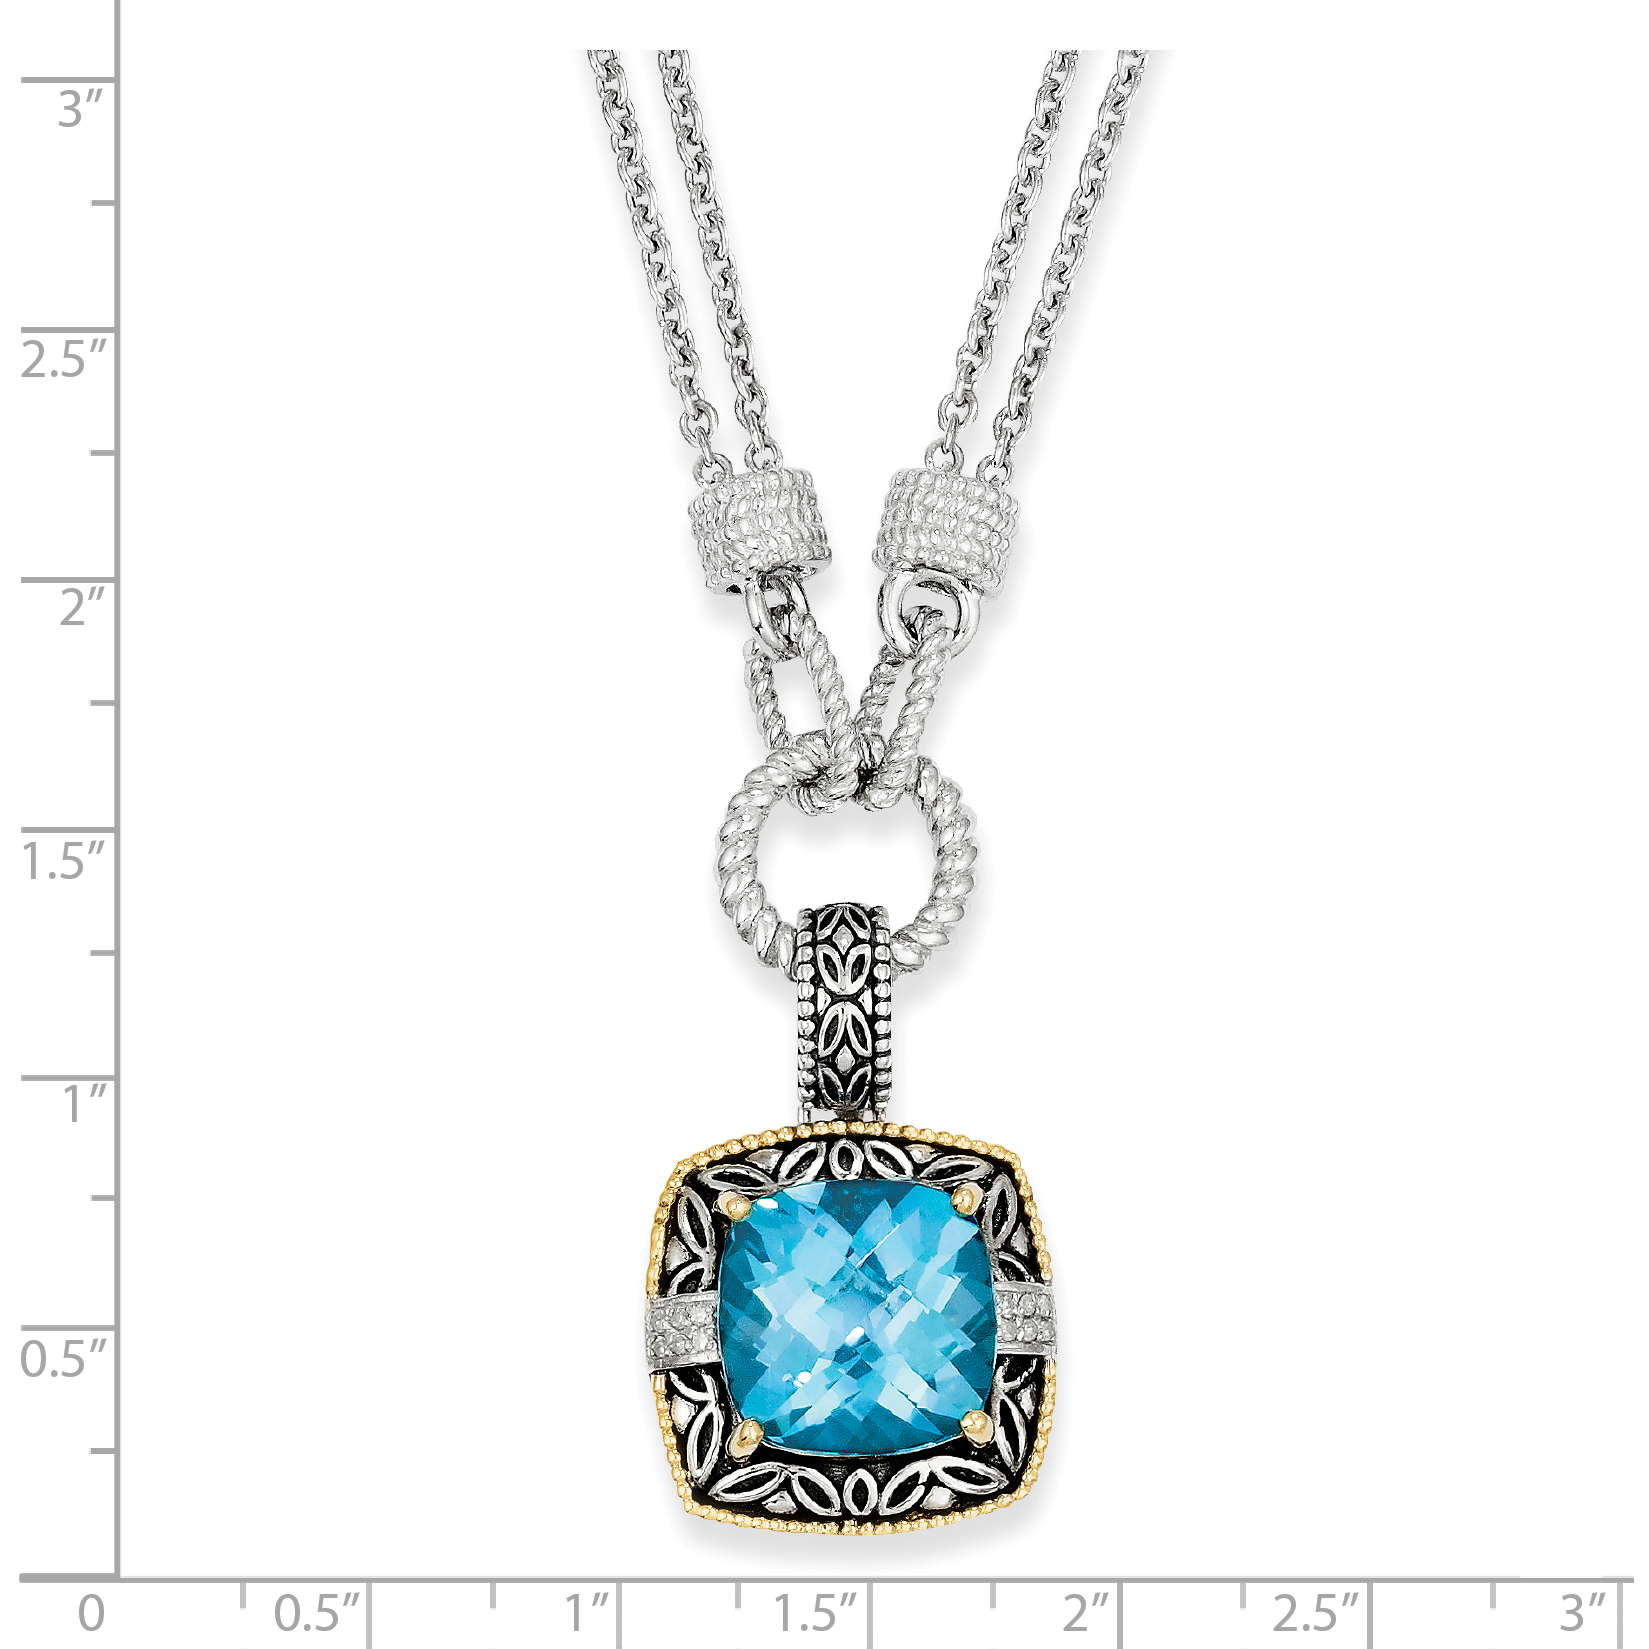 Sterling Silver Two Tone Silver And Gold Plated Sterling Silver w/Sky Blue Topaz & Diamond Necklace - image 1 of 2